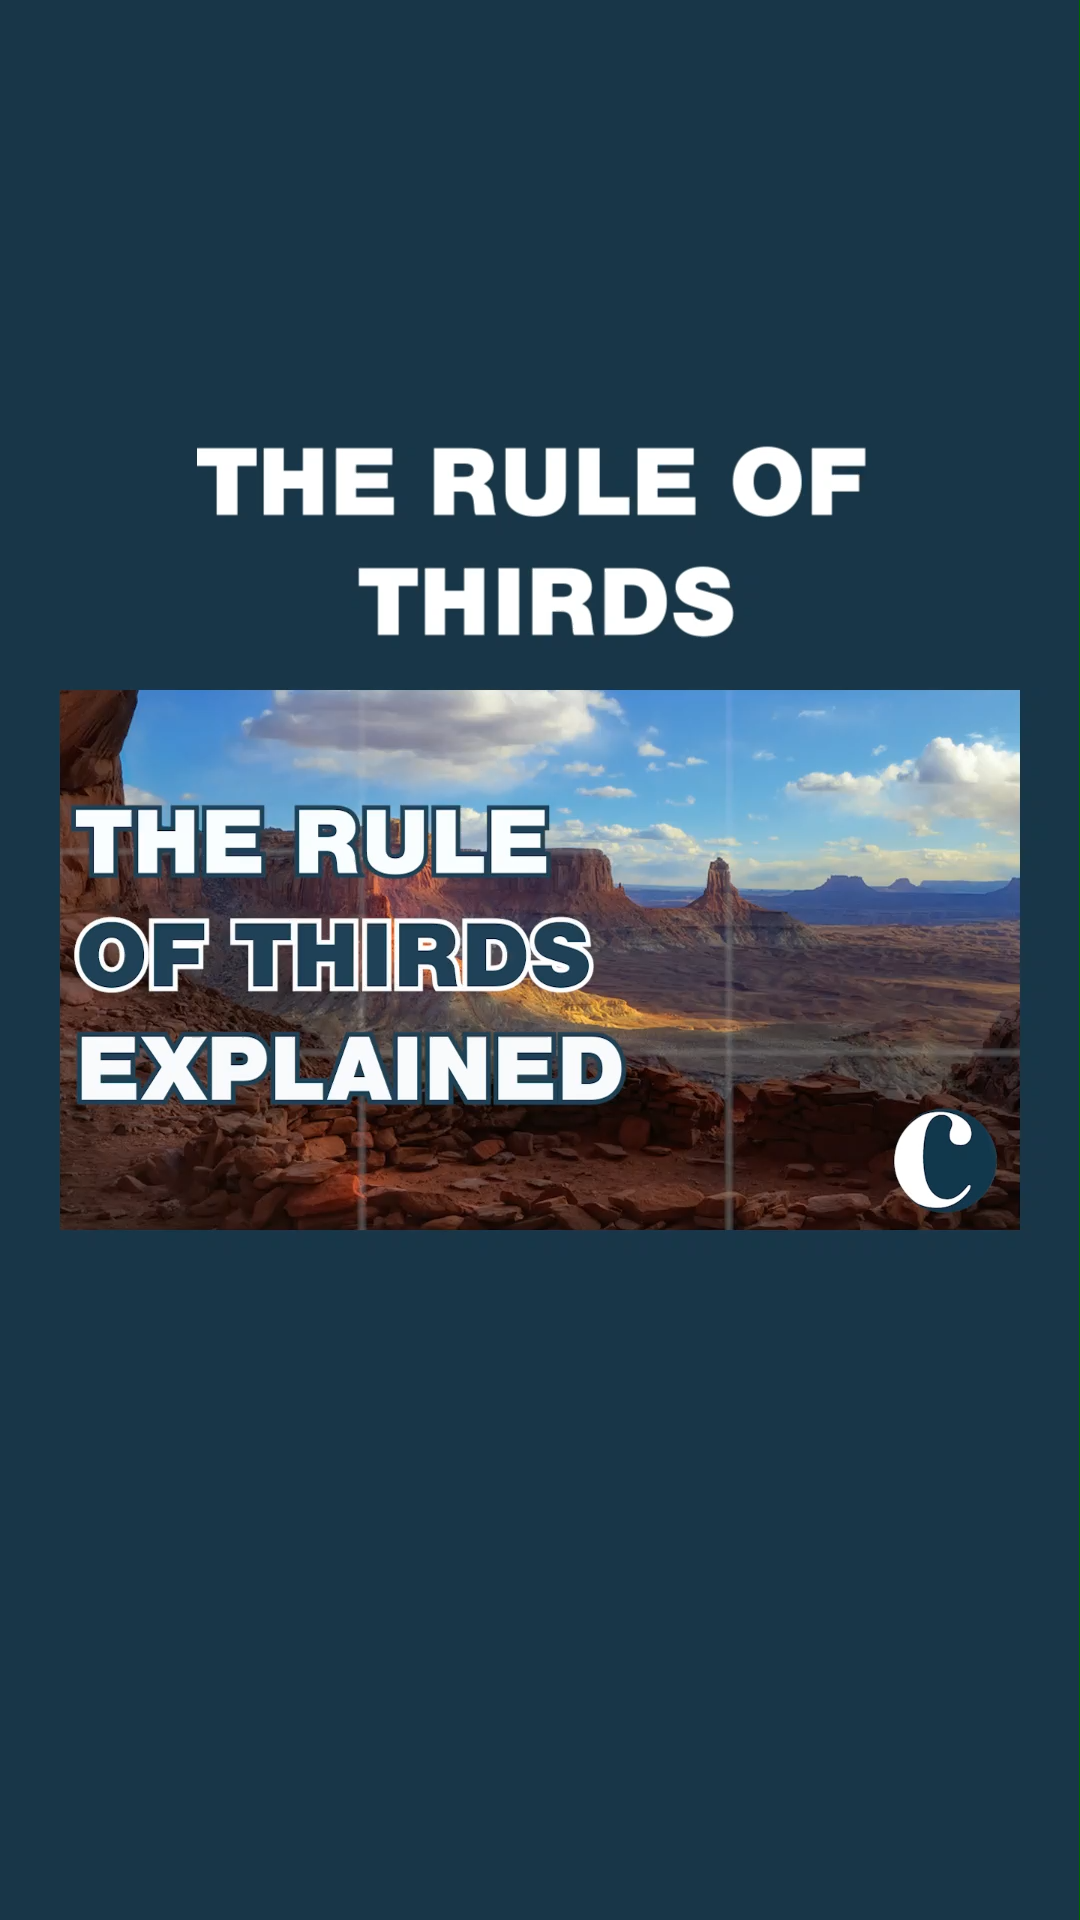 Heard about the Rule of Thirds and are wondering how you can apply it to your videos and photos? Implementing the Rule of Thirds into your artwork will help create balanced and interesting photography and videography. Our informative video on the artistic technique provides examples from movies and photography that should be helpful for you. . . #videoproductioncompany #productioncompany #videotips #howtovideo #contentcreation #education #ruleofthirds #videography #filmmaking #techniques